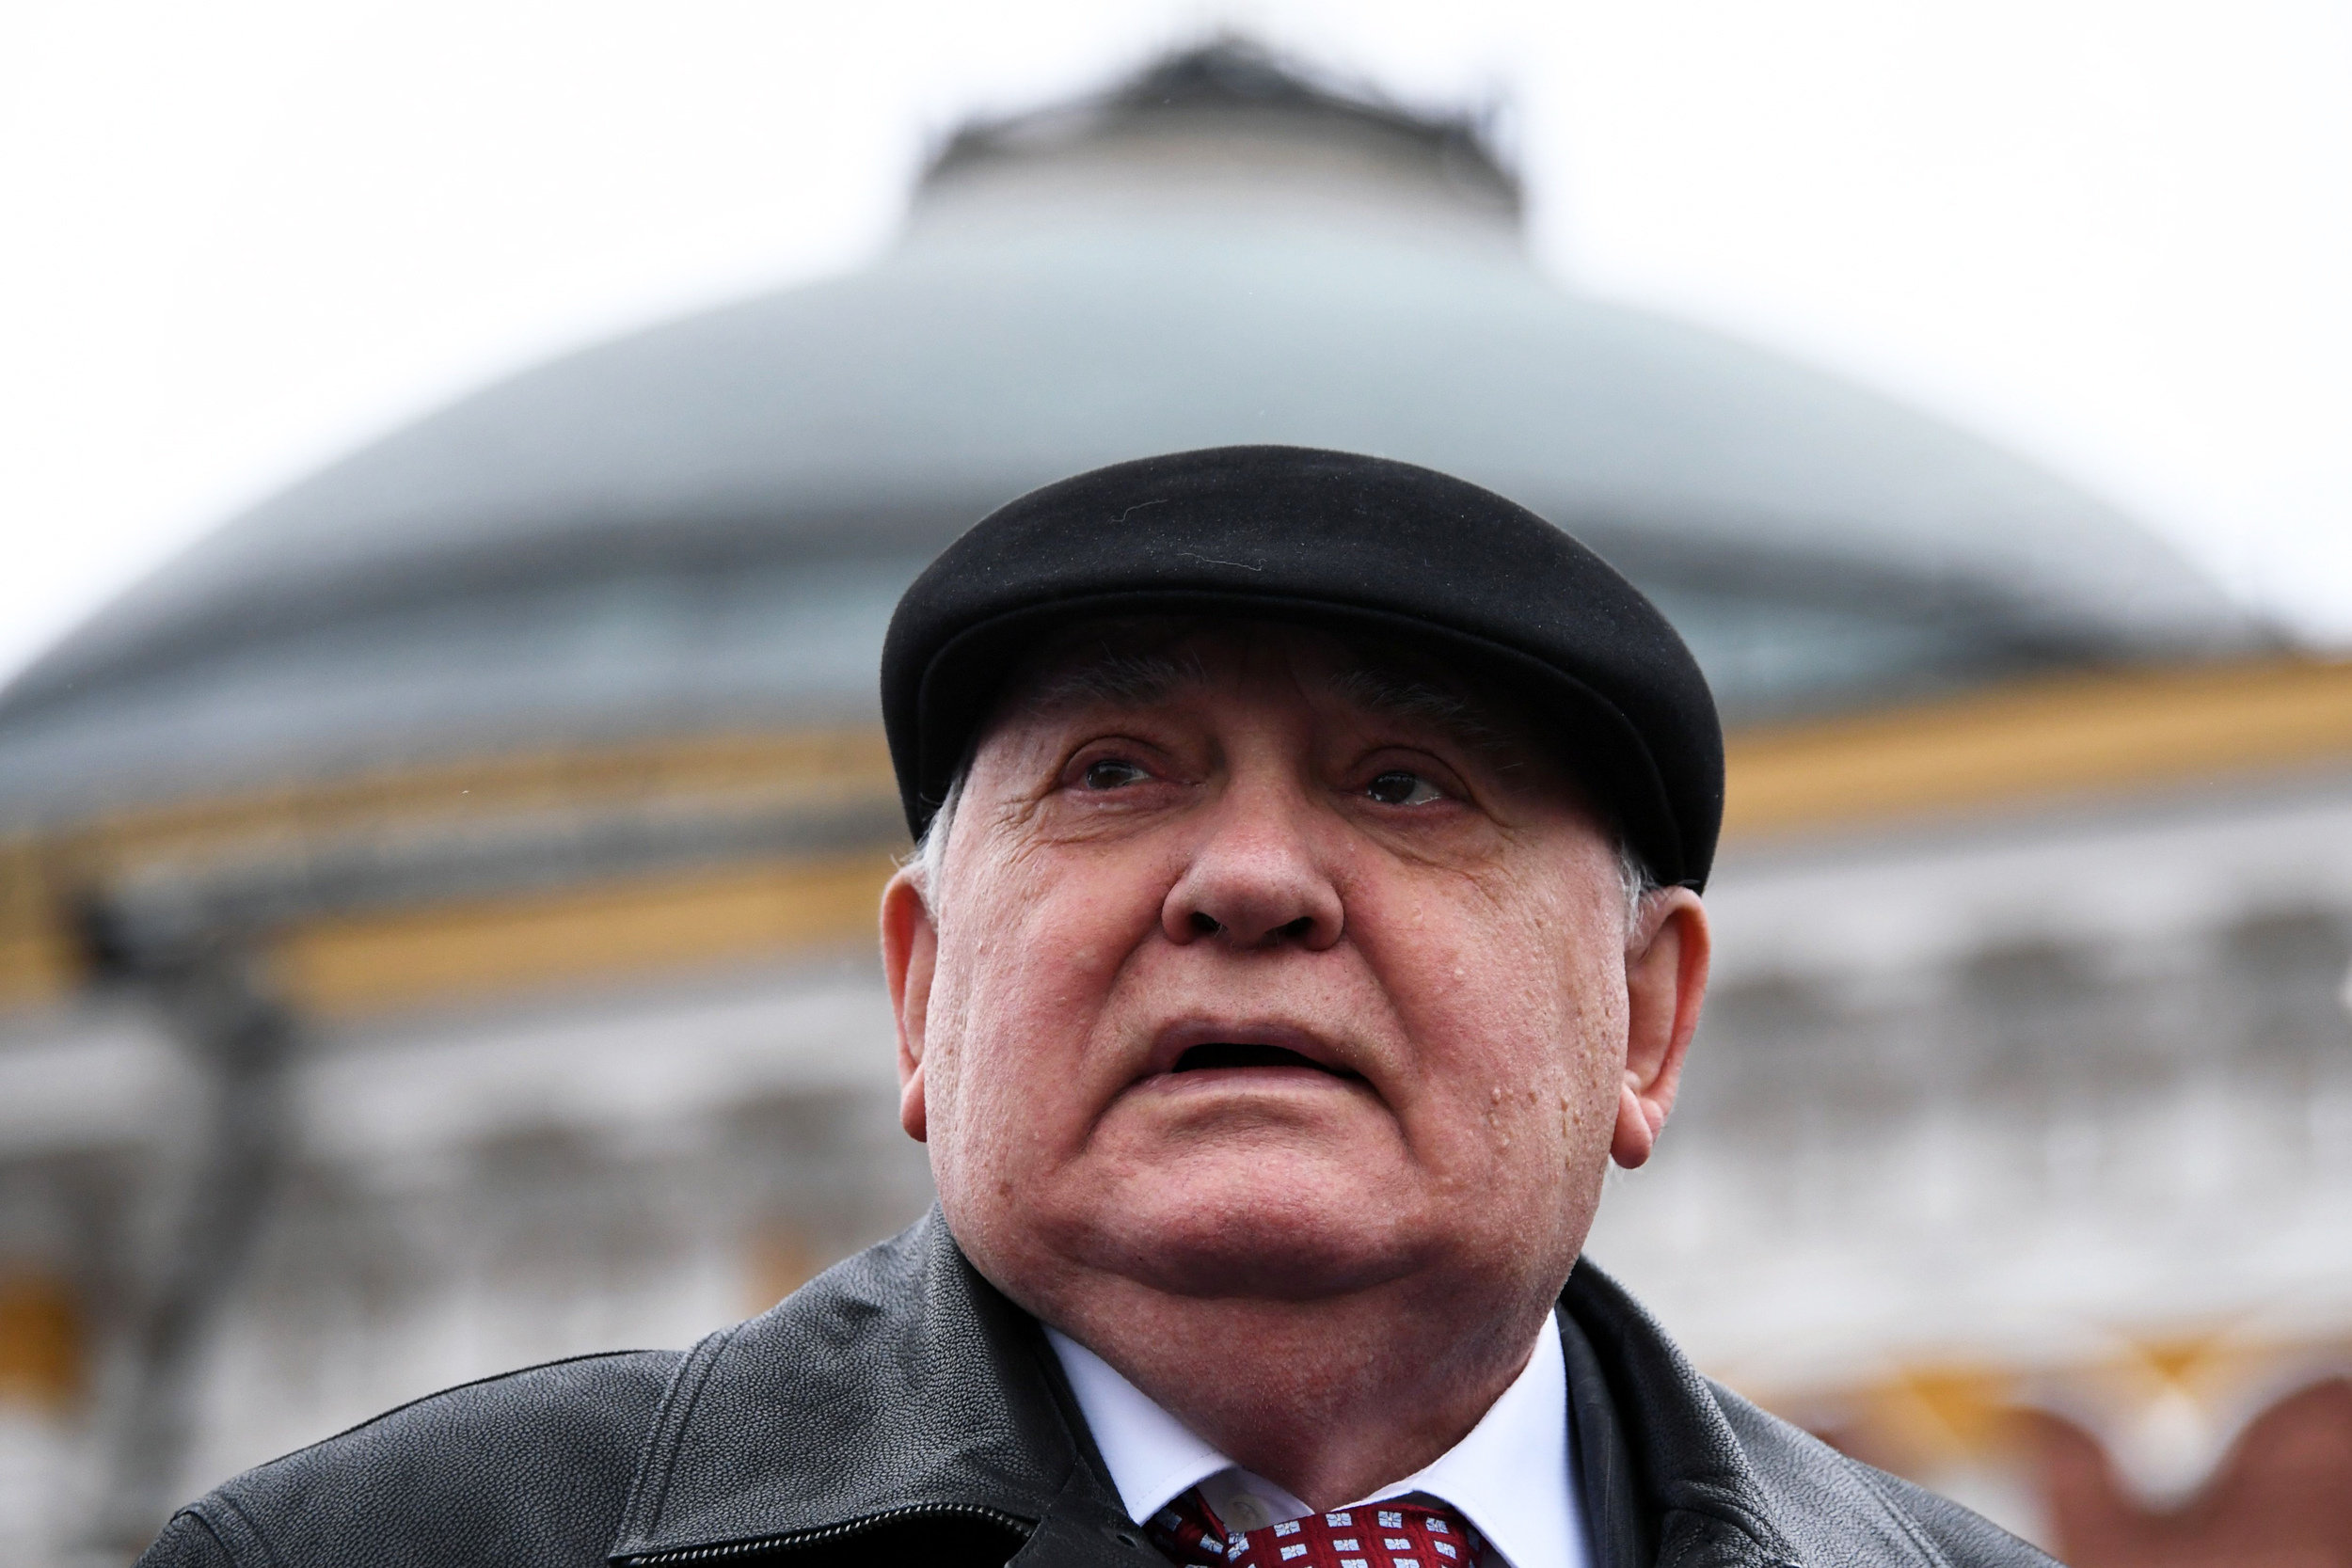 Gorbachev, who pulled Soviets from Afghanistan, says U.S. campaign was doomed from start